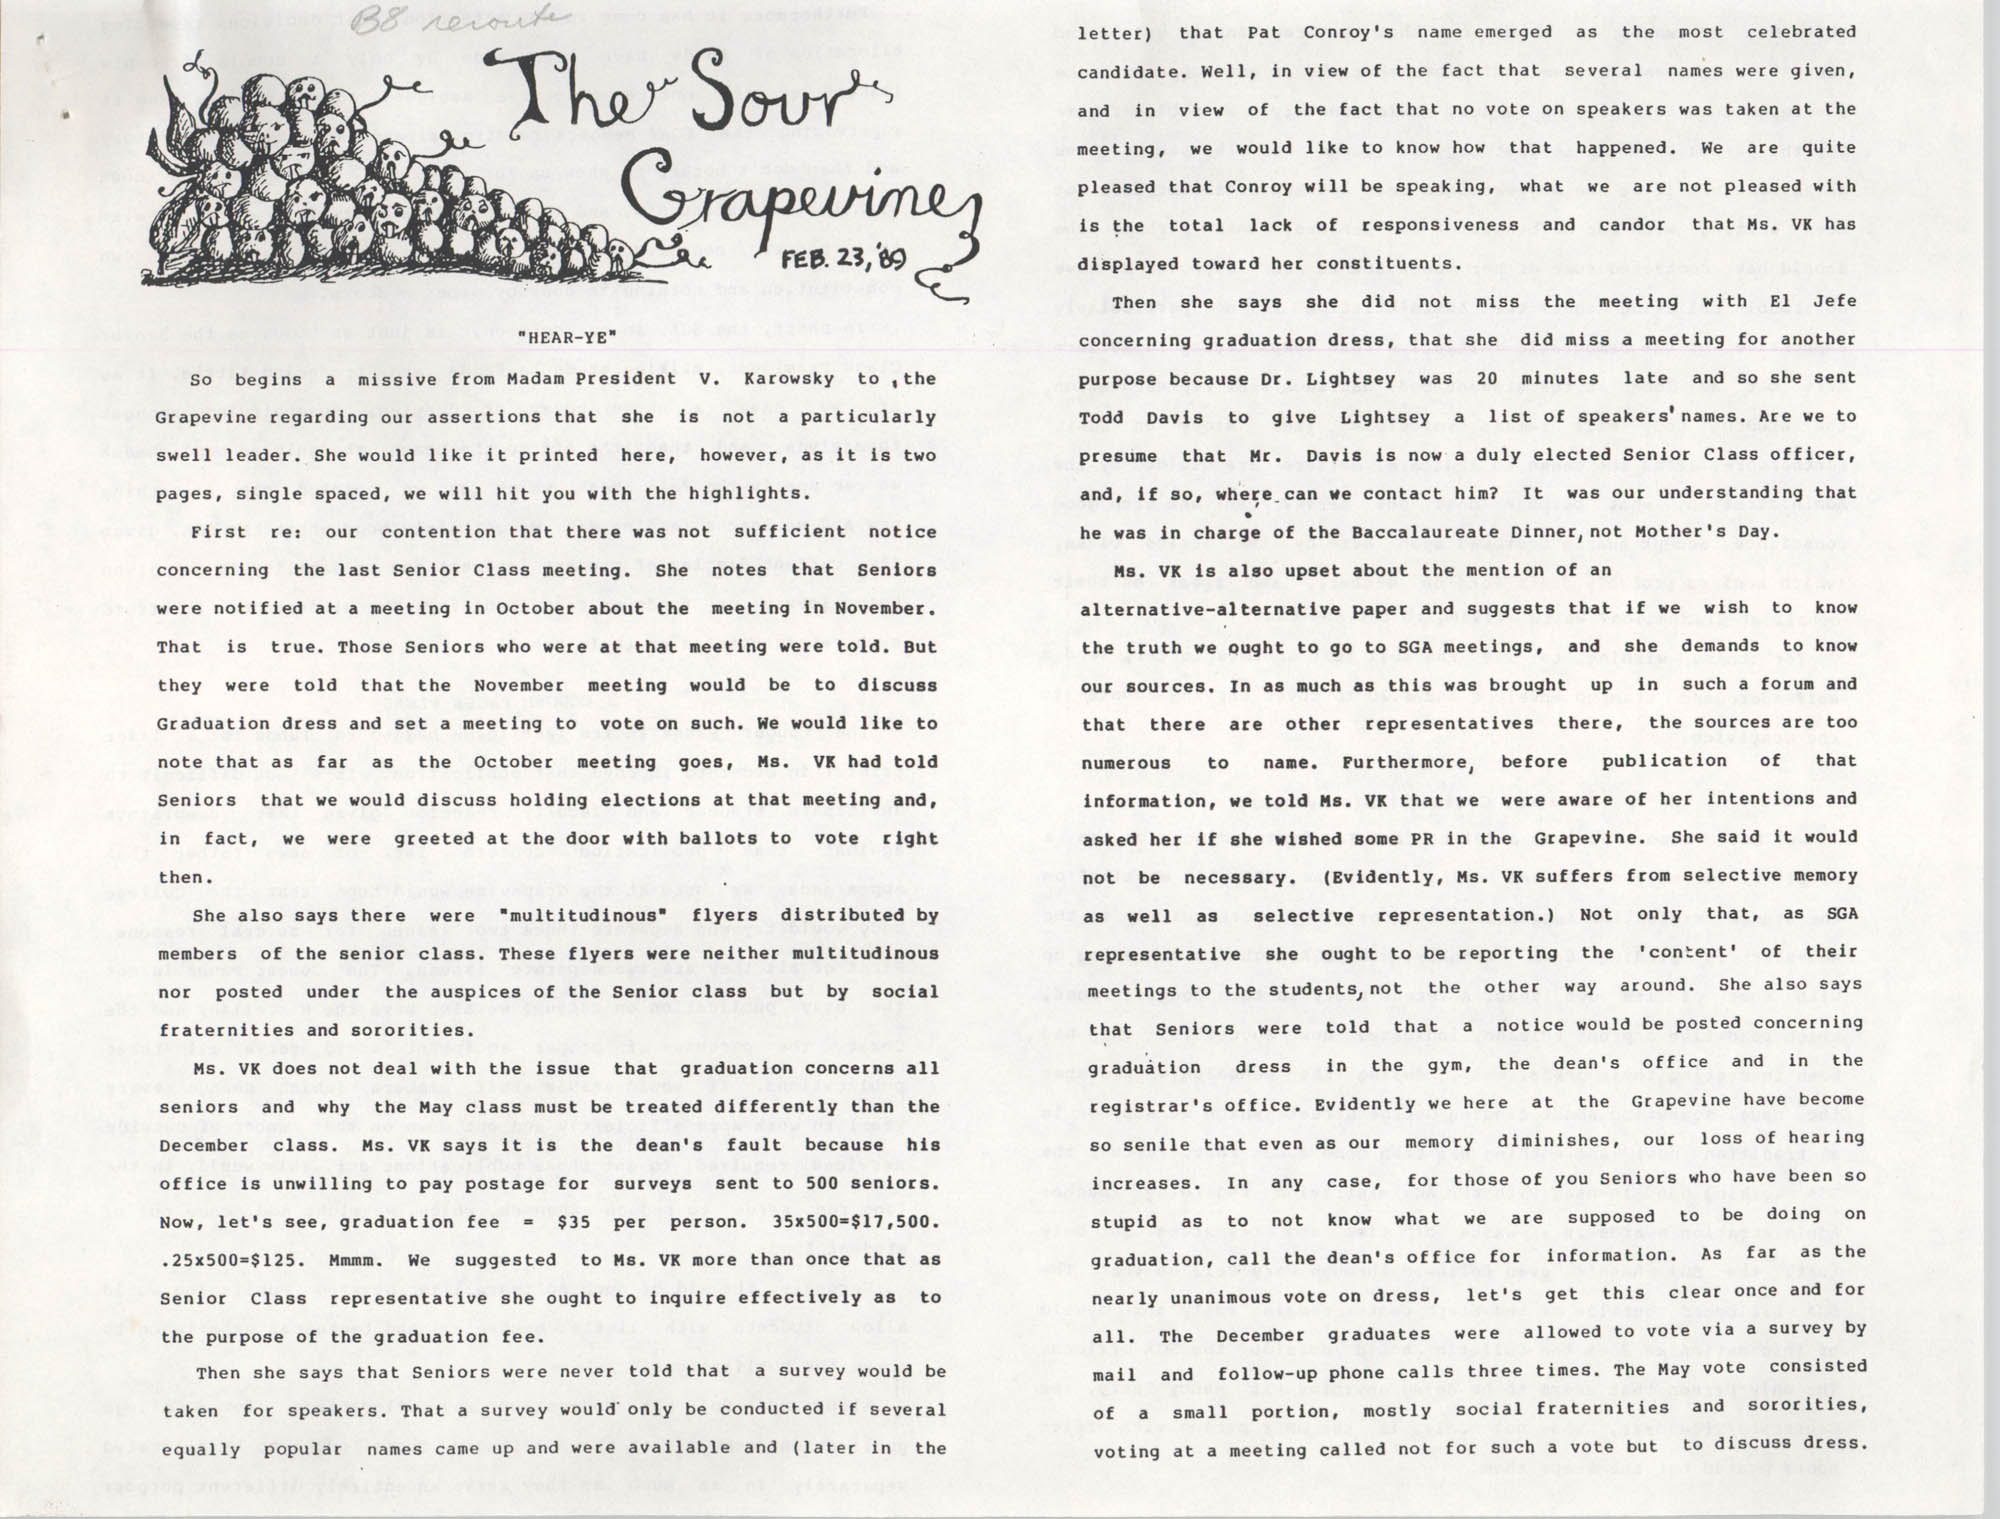 The Sour Grapevine, February 23, 1989